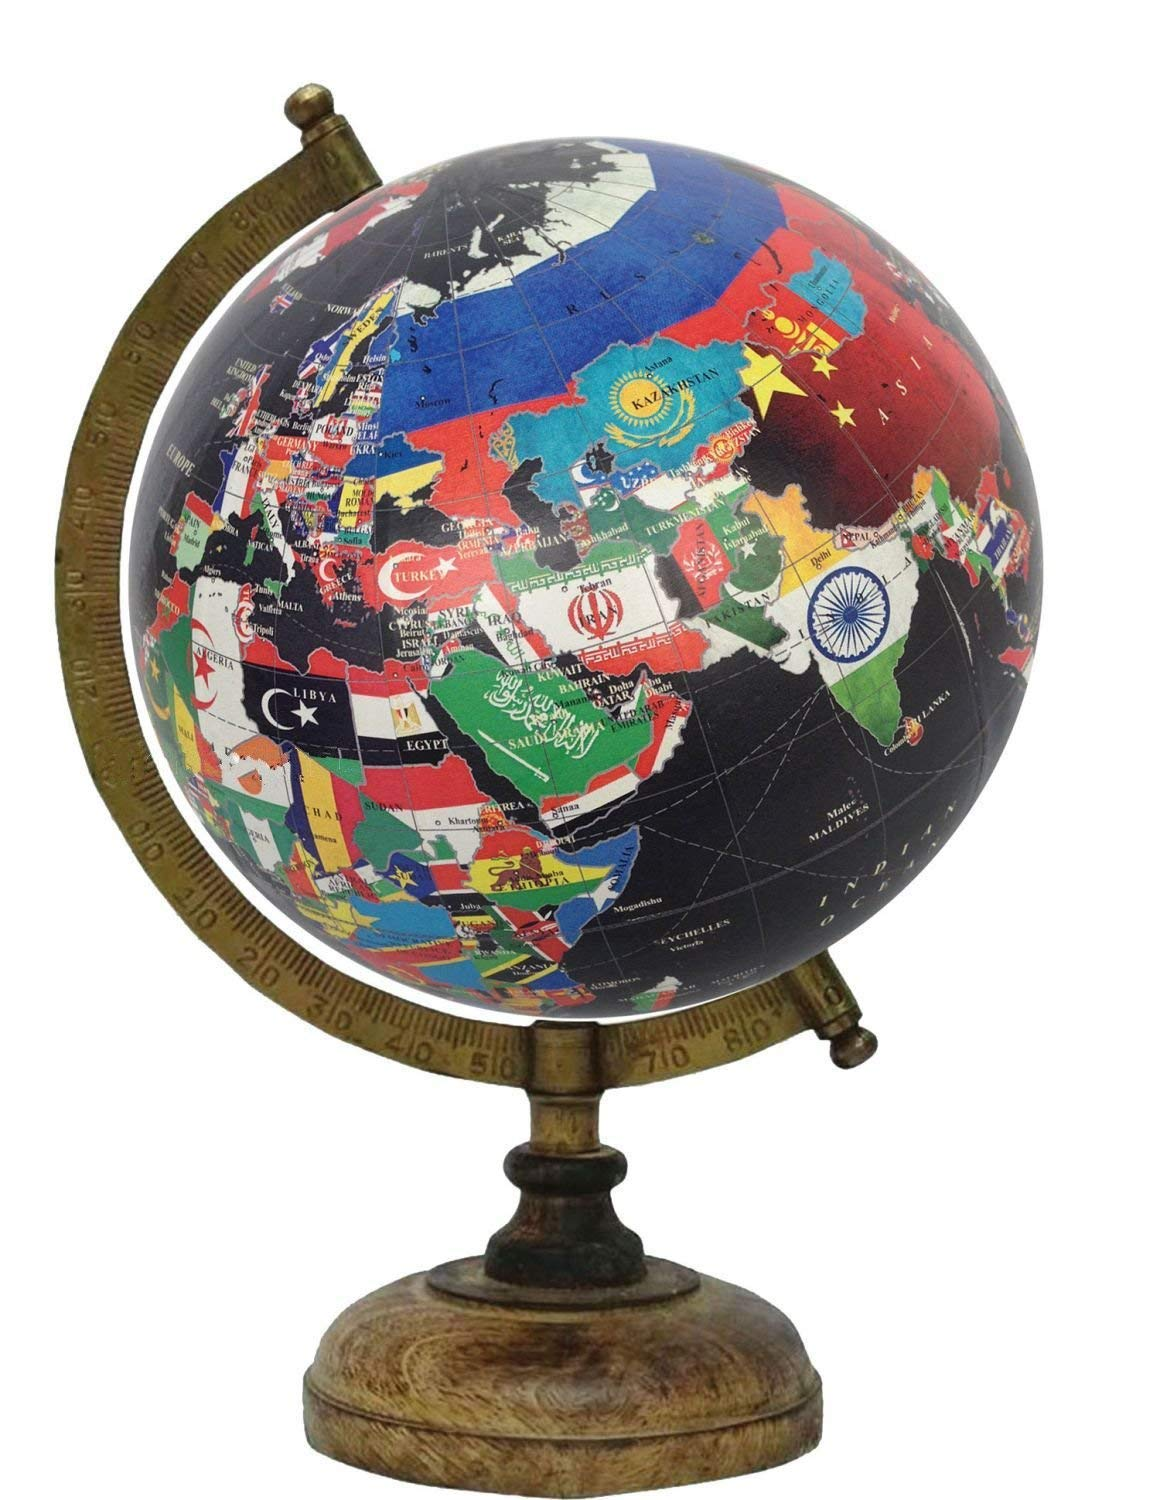 8-inch Educational Antique Globe with Brass Arc and Wooden Base By Globes Hub-Perfect for Home, Office & Classroom